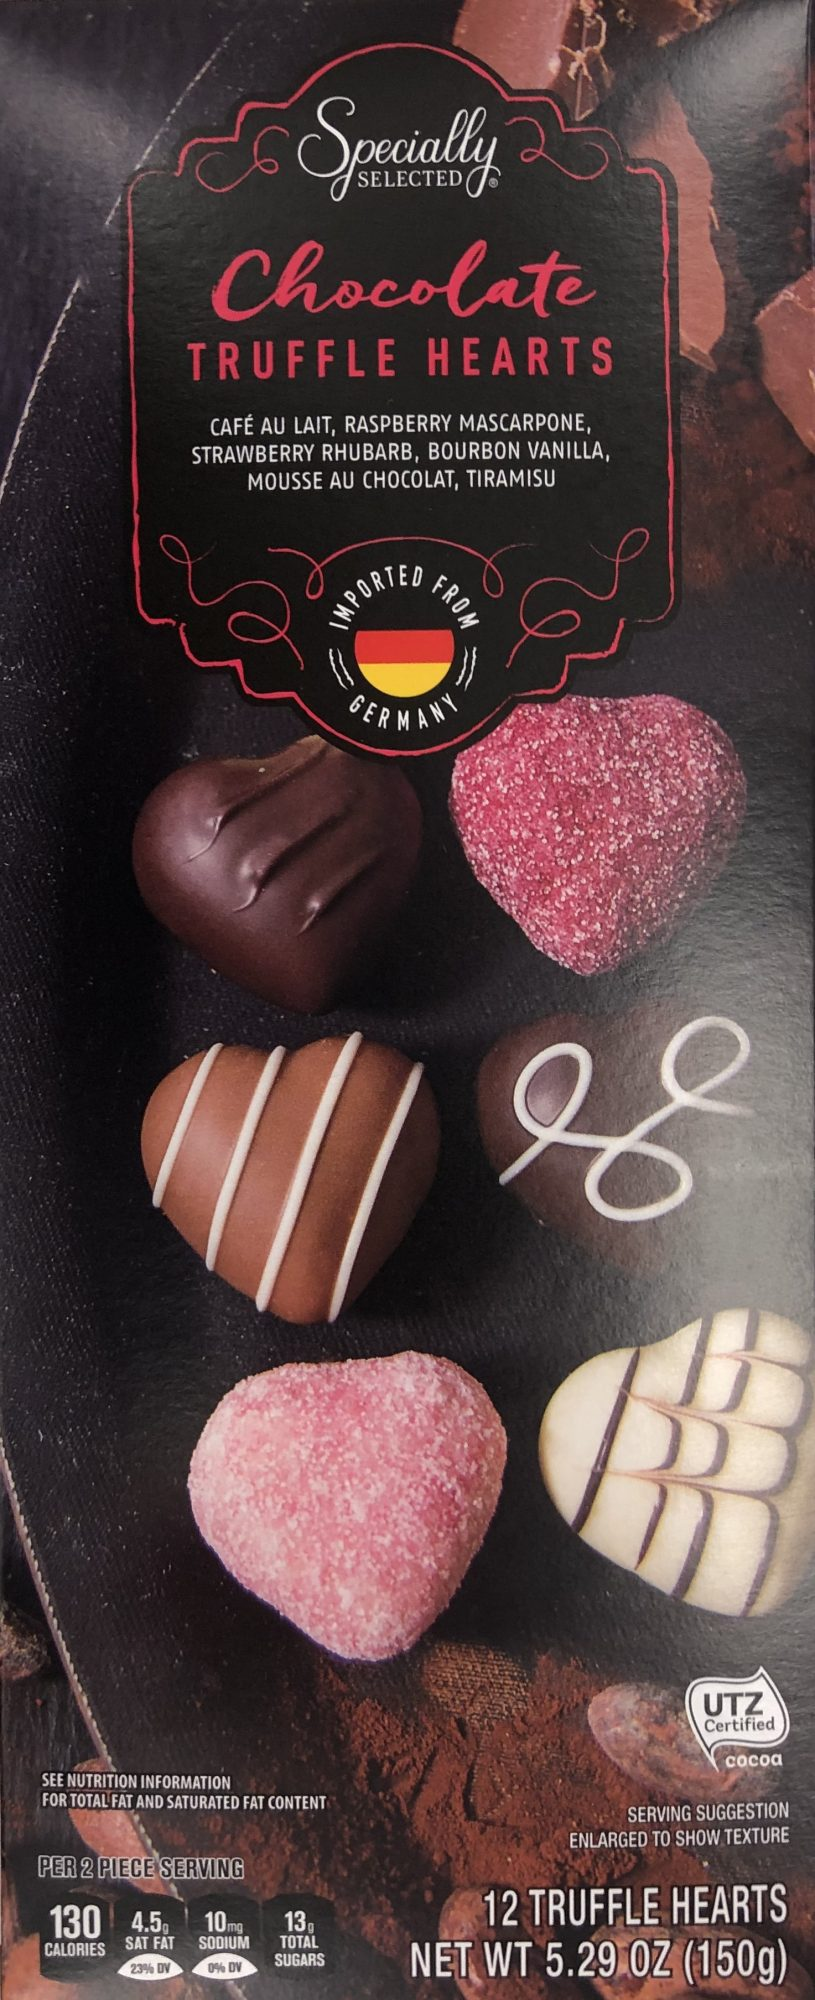 specially-selected-chocolate-truffle-hearts.jpg